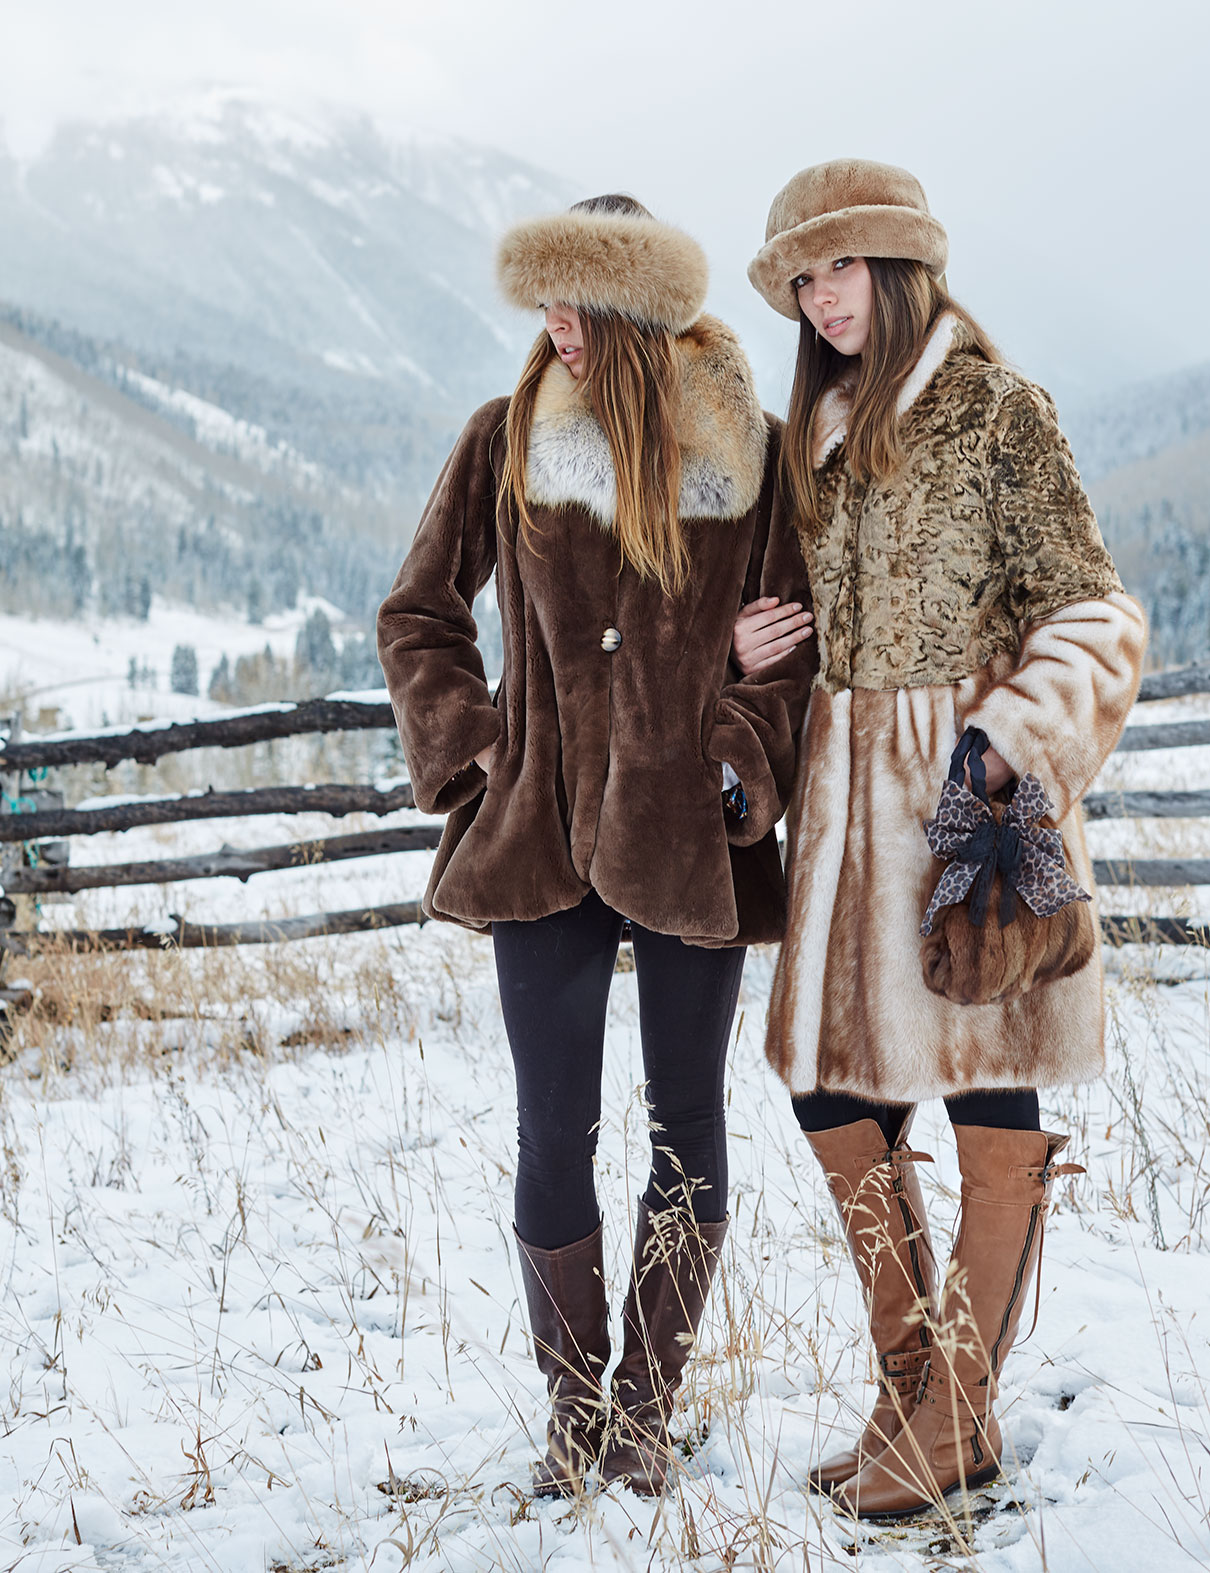 Girls in Furs in Winter snow in Vail, Colorado